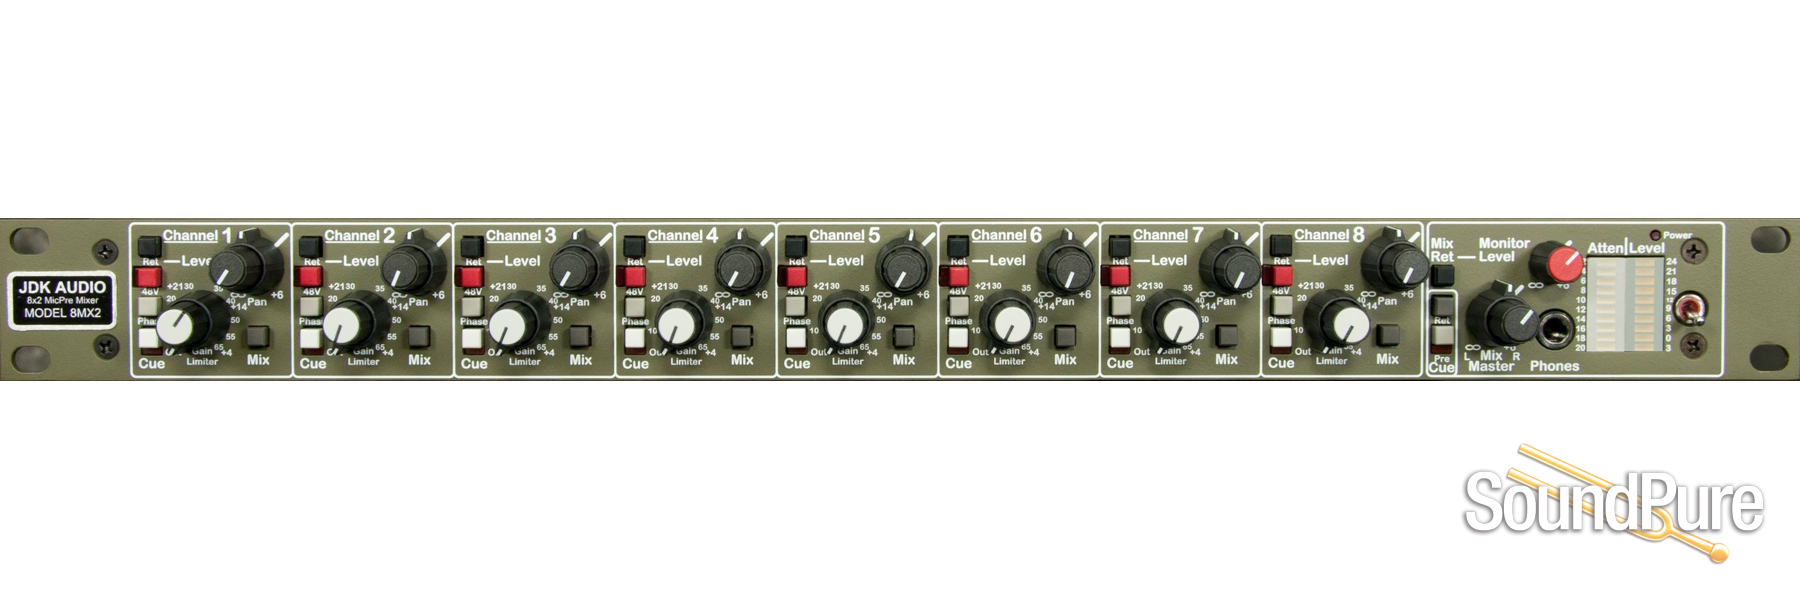 Api Audio Ati 8mx2 Micpre Mixer Dynamic Mic Preamplifier 8 Channel Preamp Perfect For Capturing Live Events In Stereo